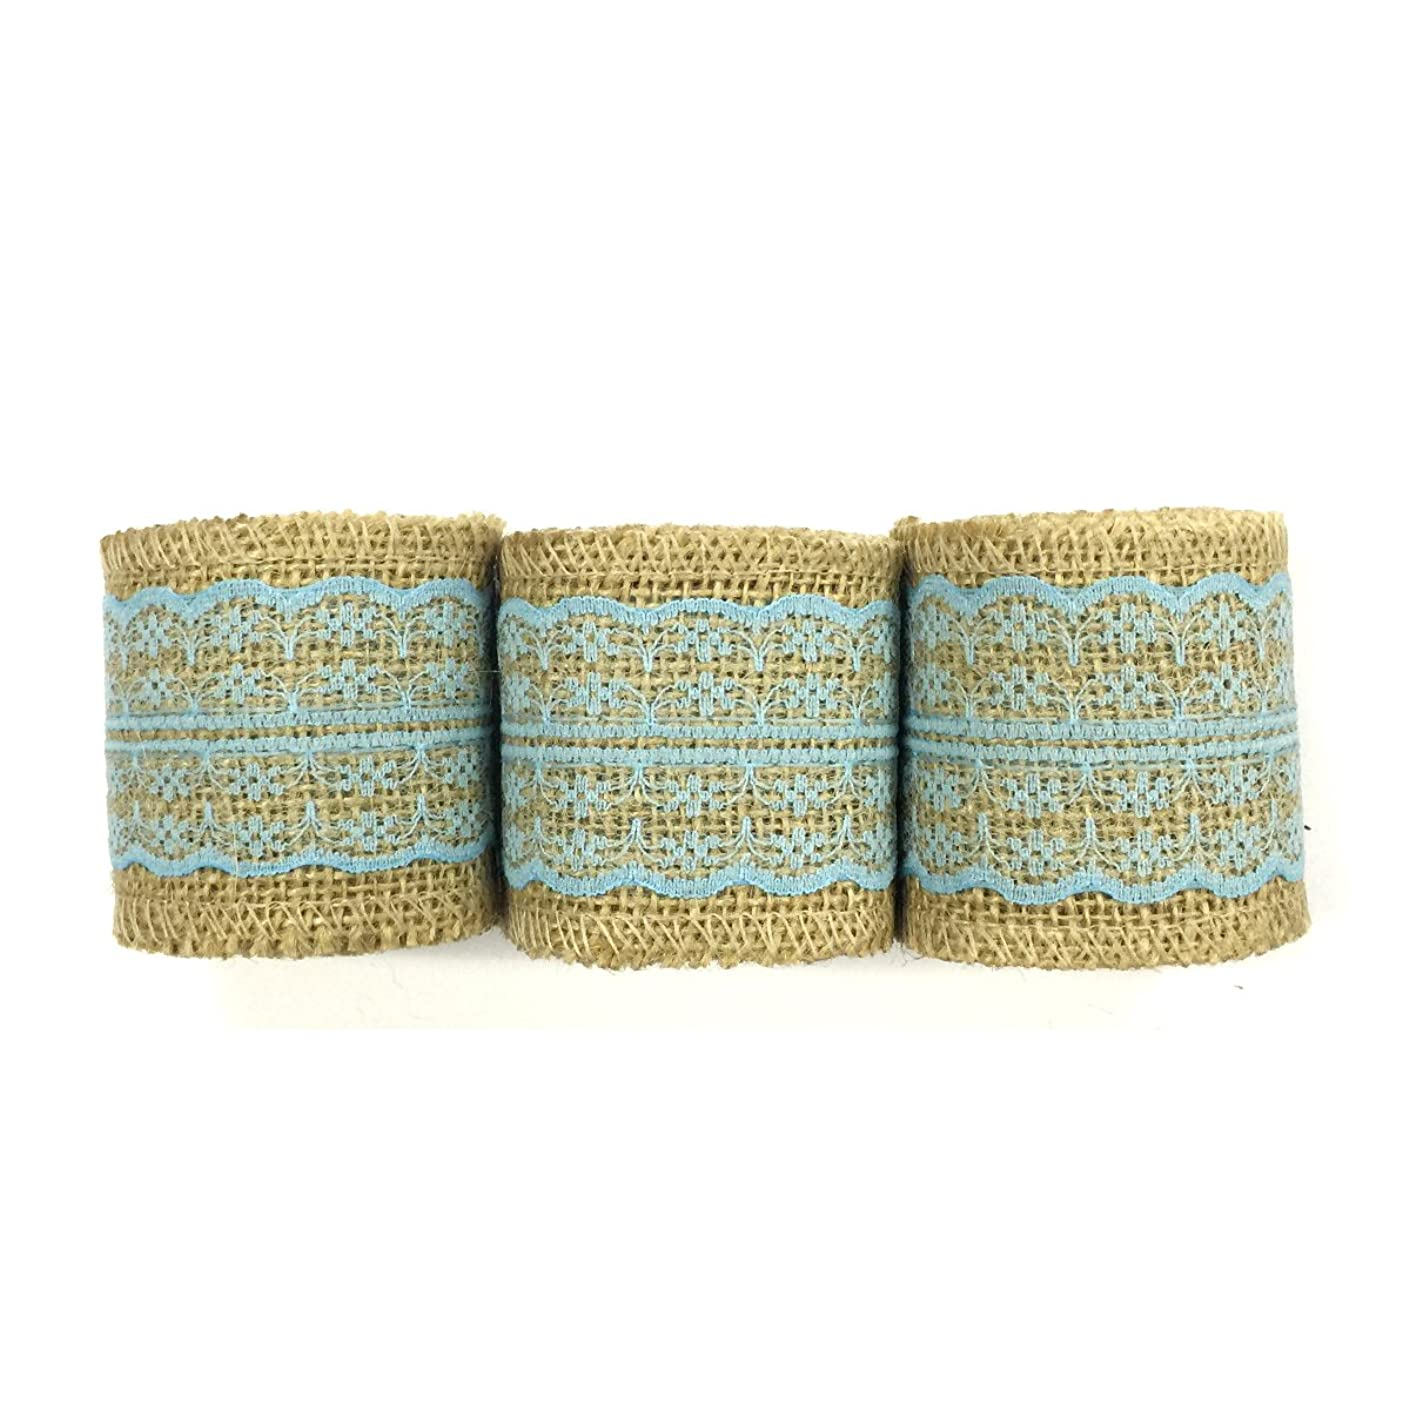 Wrapables Hessian Burlap with Lace Ribbon 2.5 Inch Width x 2 Yards Length (Set of 3), Sky Blue